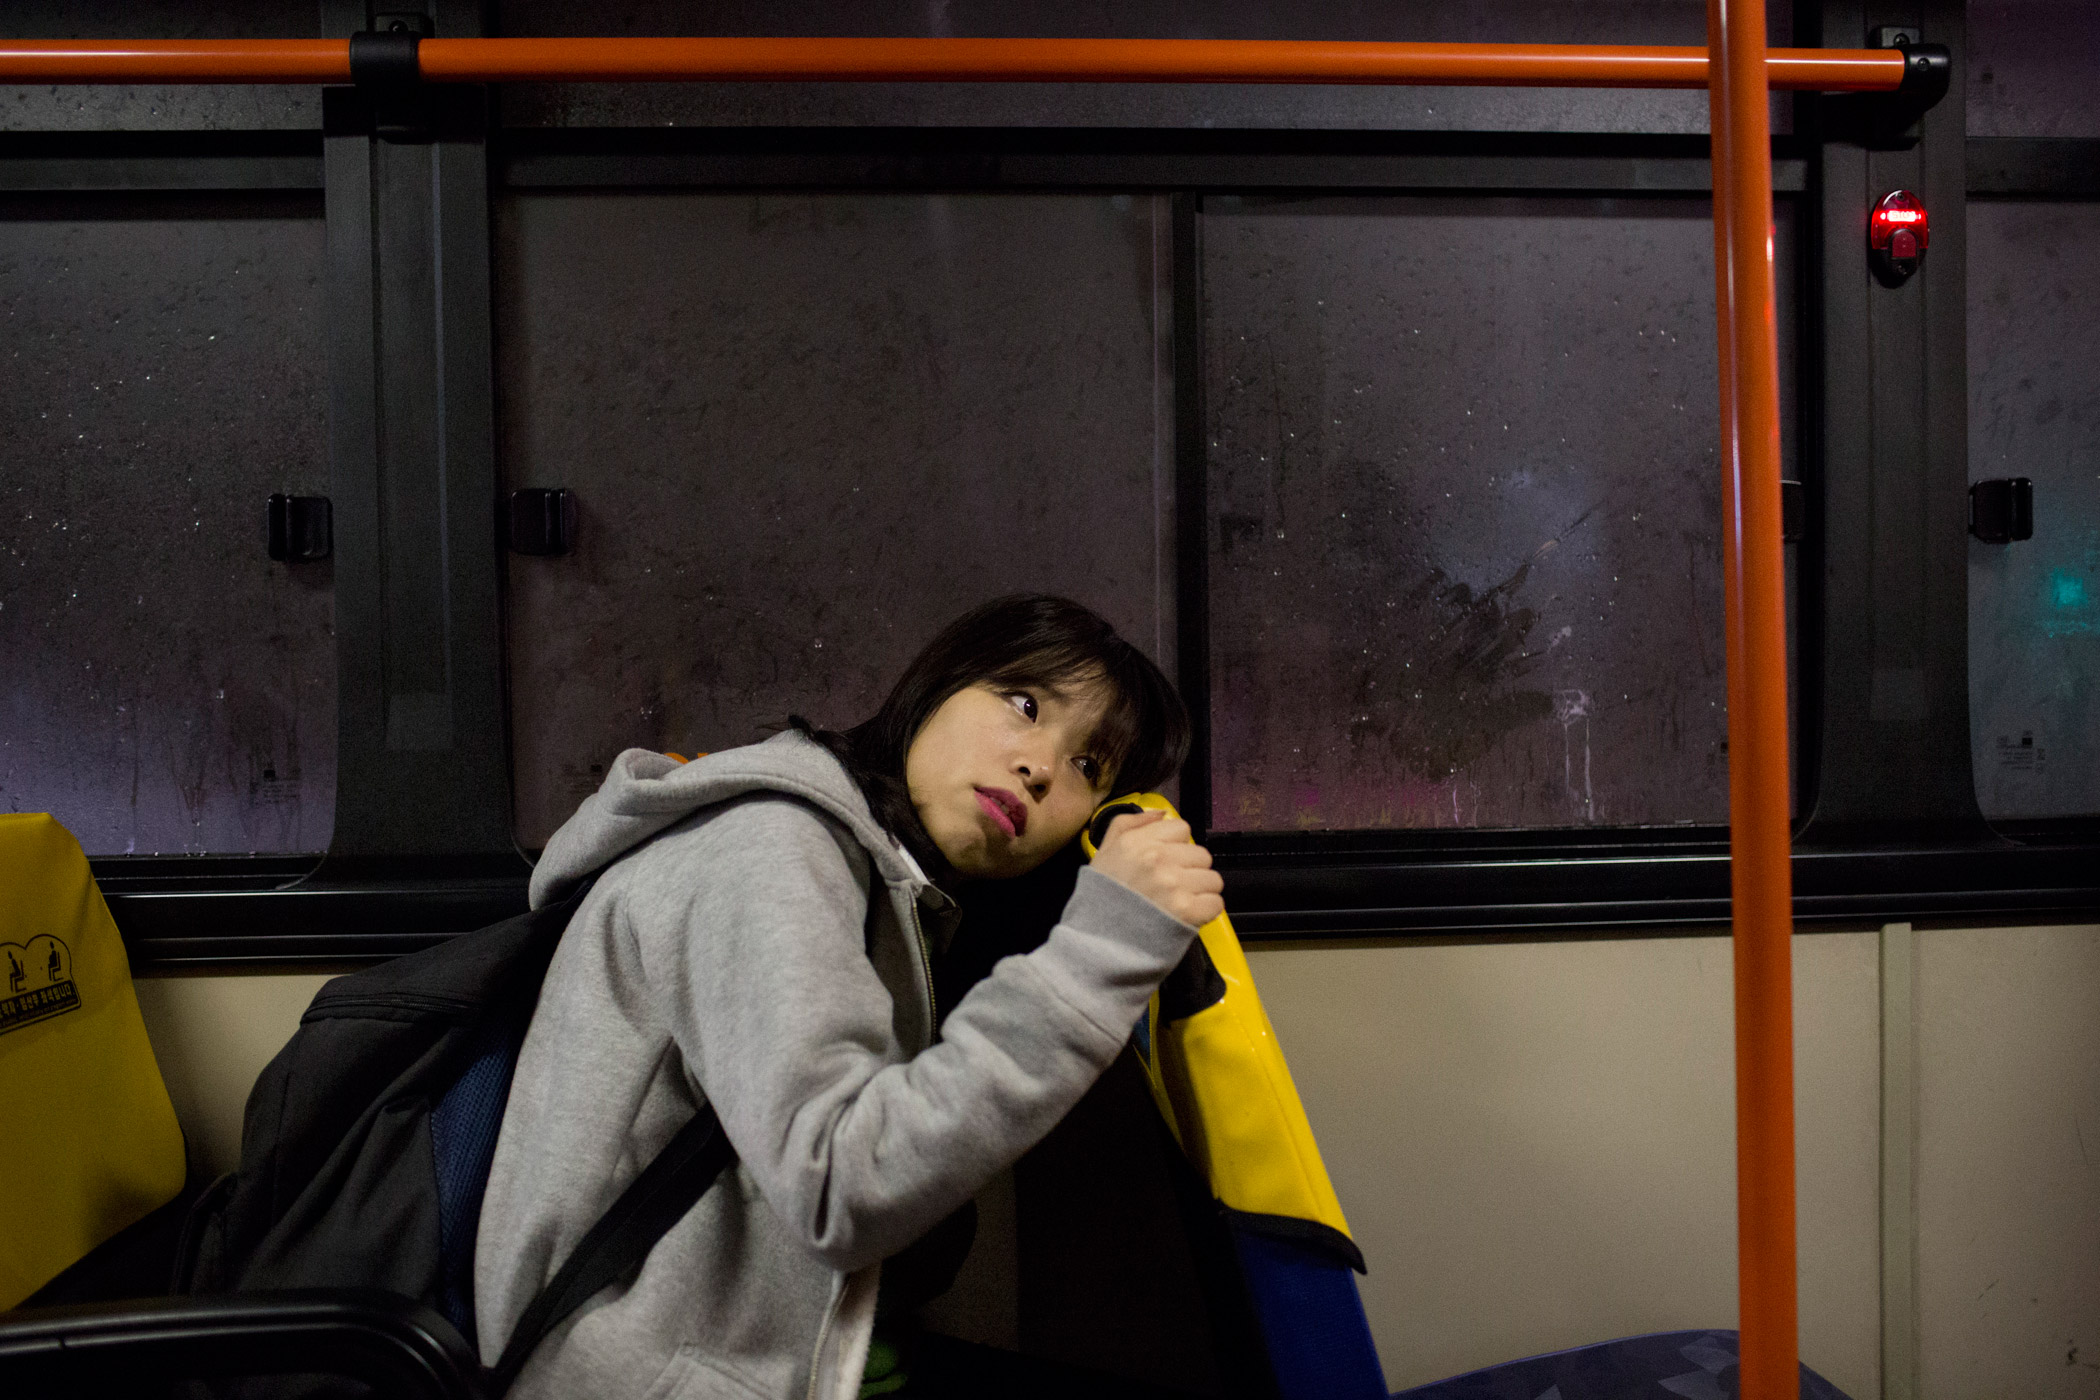 North Korean refugee Kim Kyoung-ok arrived in Seoul as a 13 year old in 2009. Here, she rides the bus home from school at 7:30 p.m. on March 4, 2015, in Seoul.